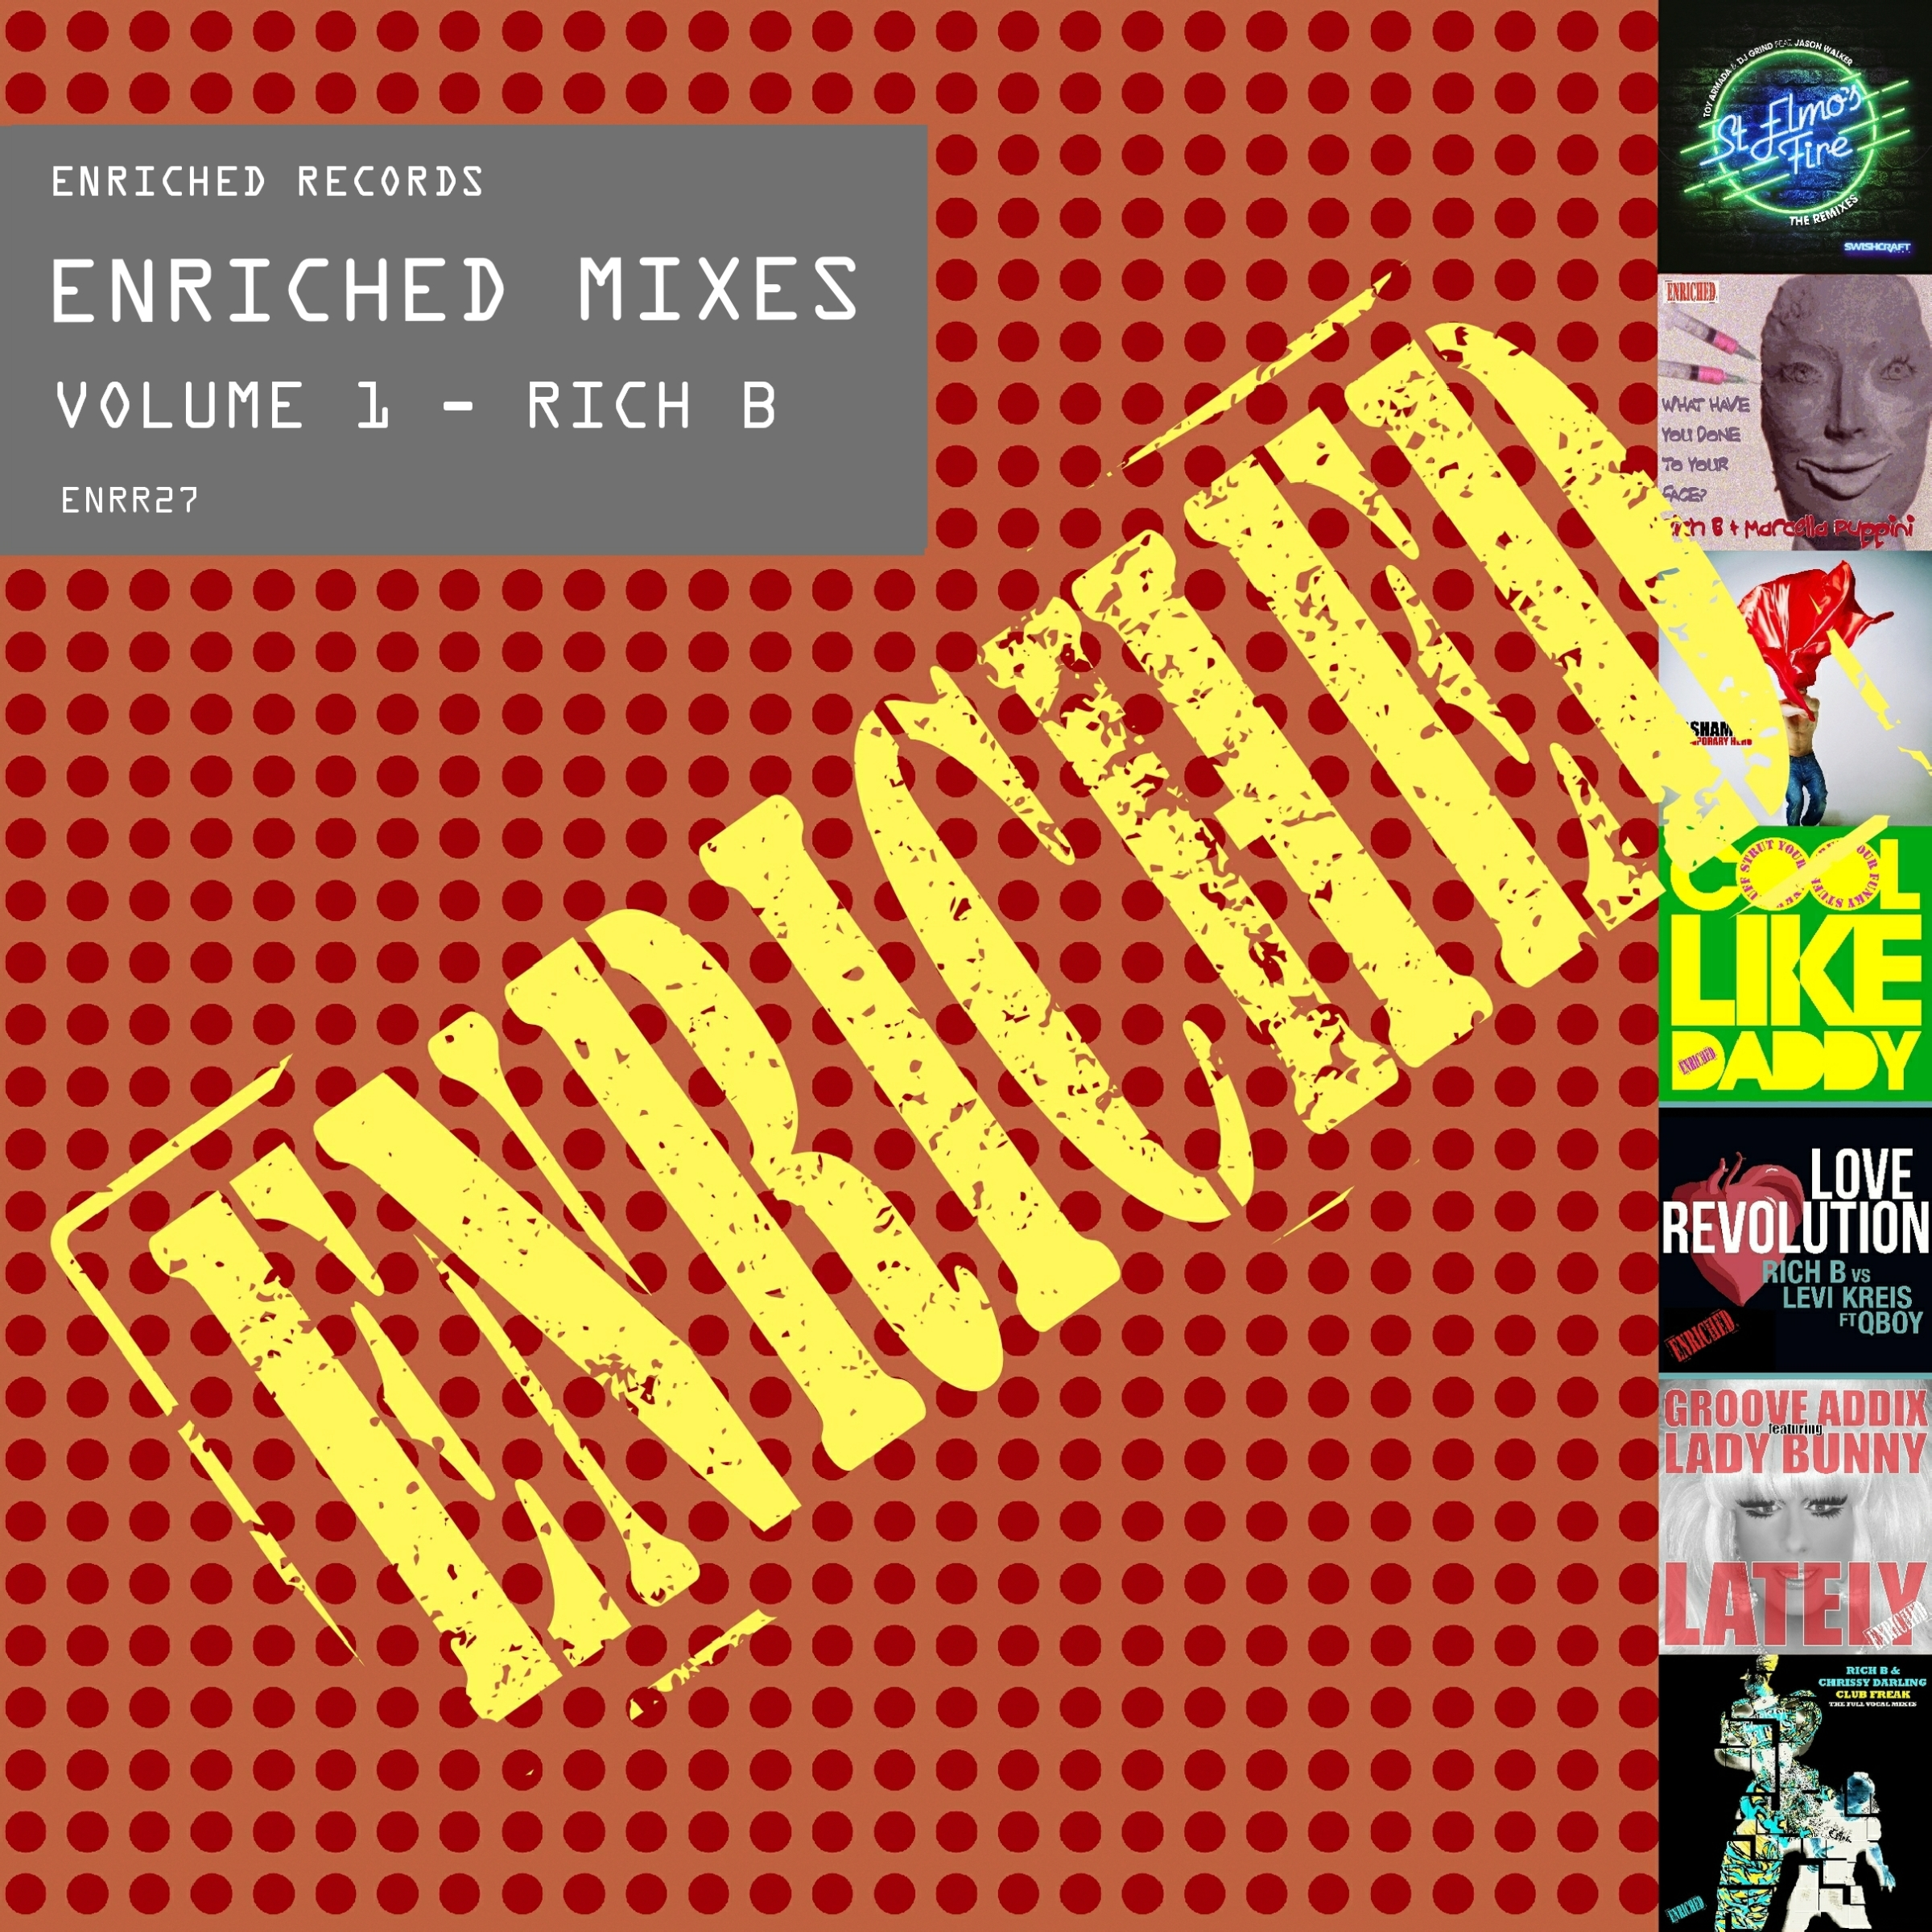 Enriched Mixes Vol.1